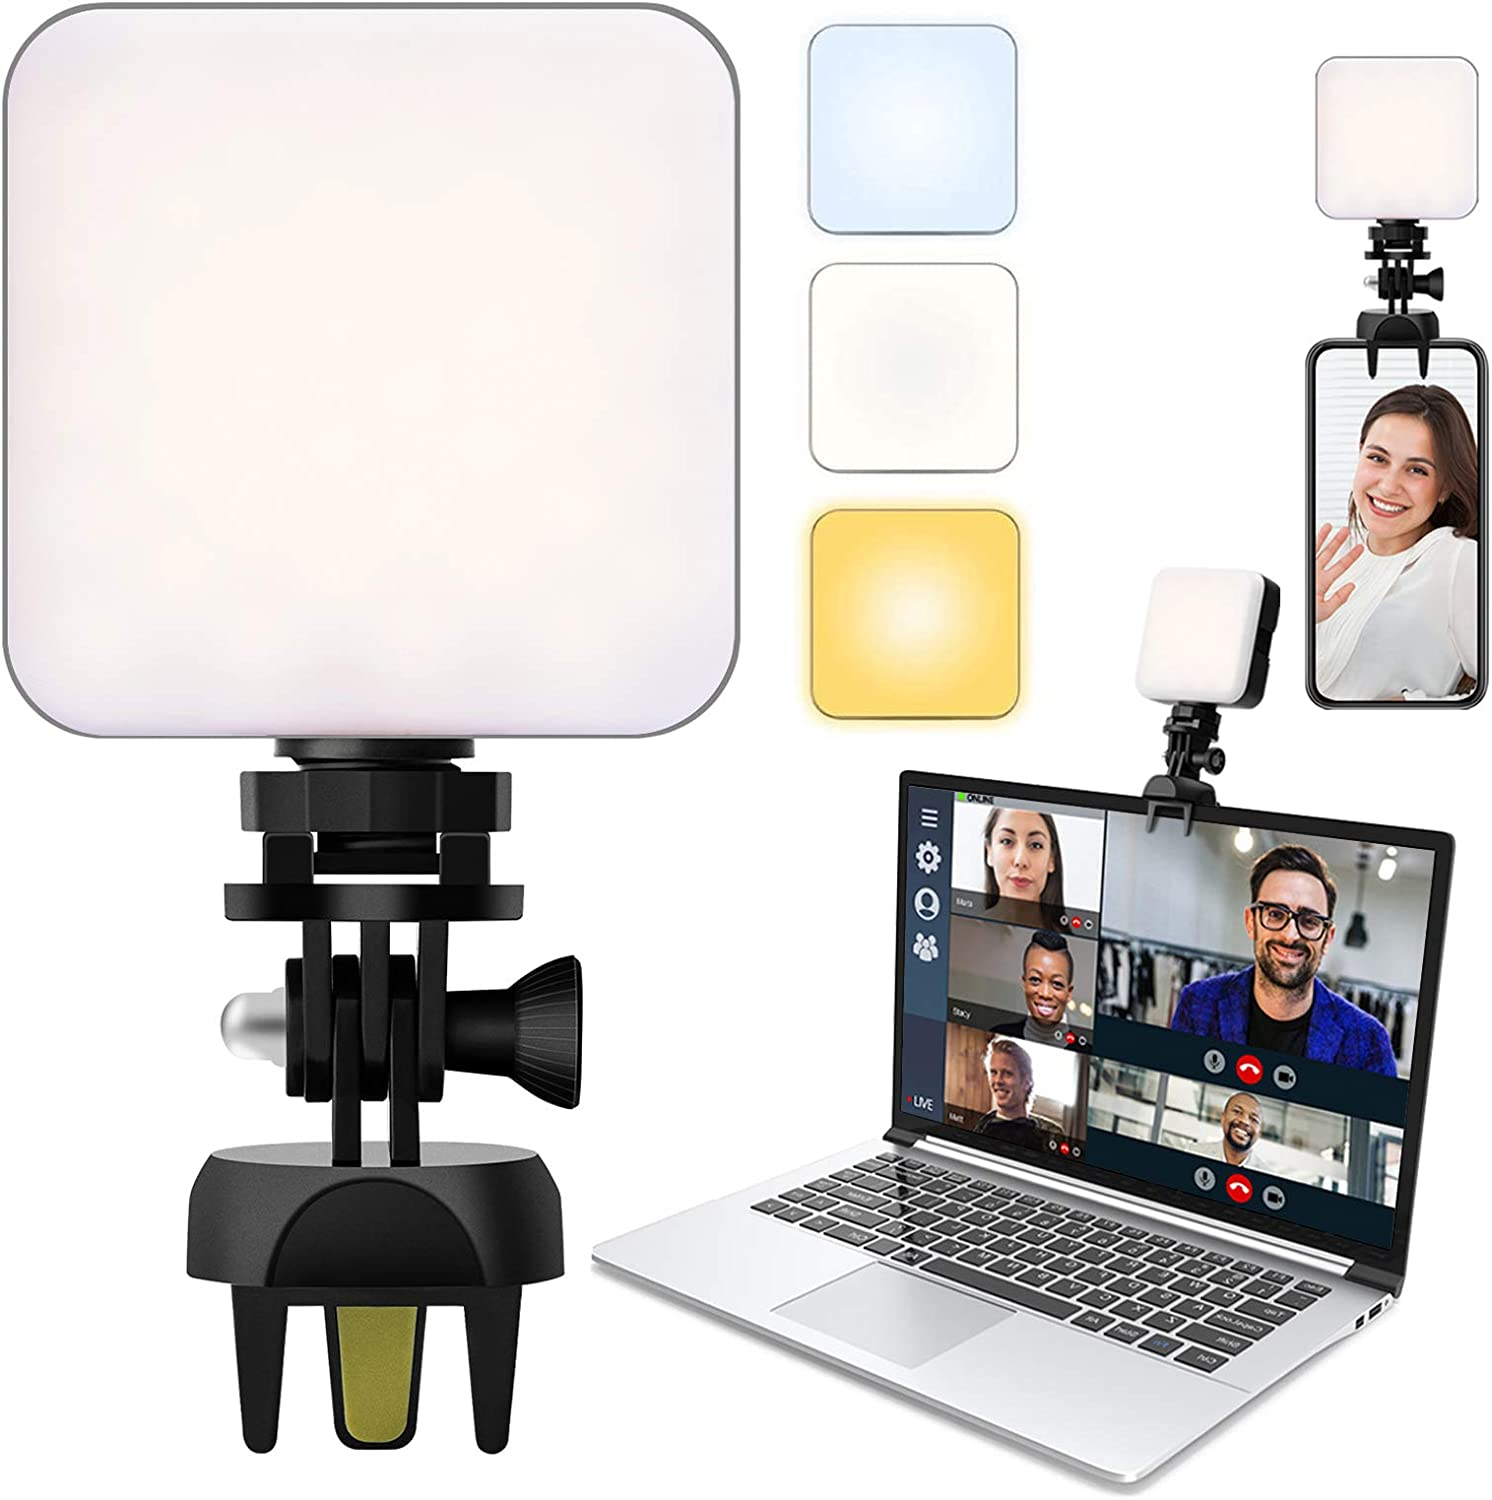 Video Conference Lighting with Upgraded Clamp Mount Zoom Lighti lowest price New mail order